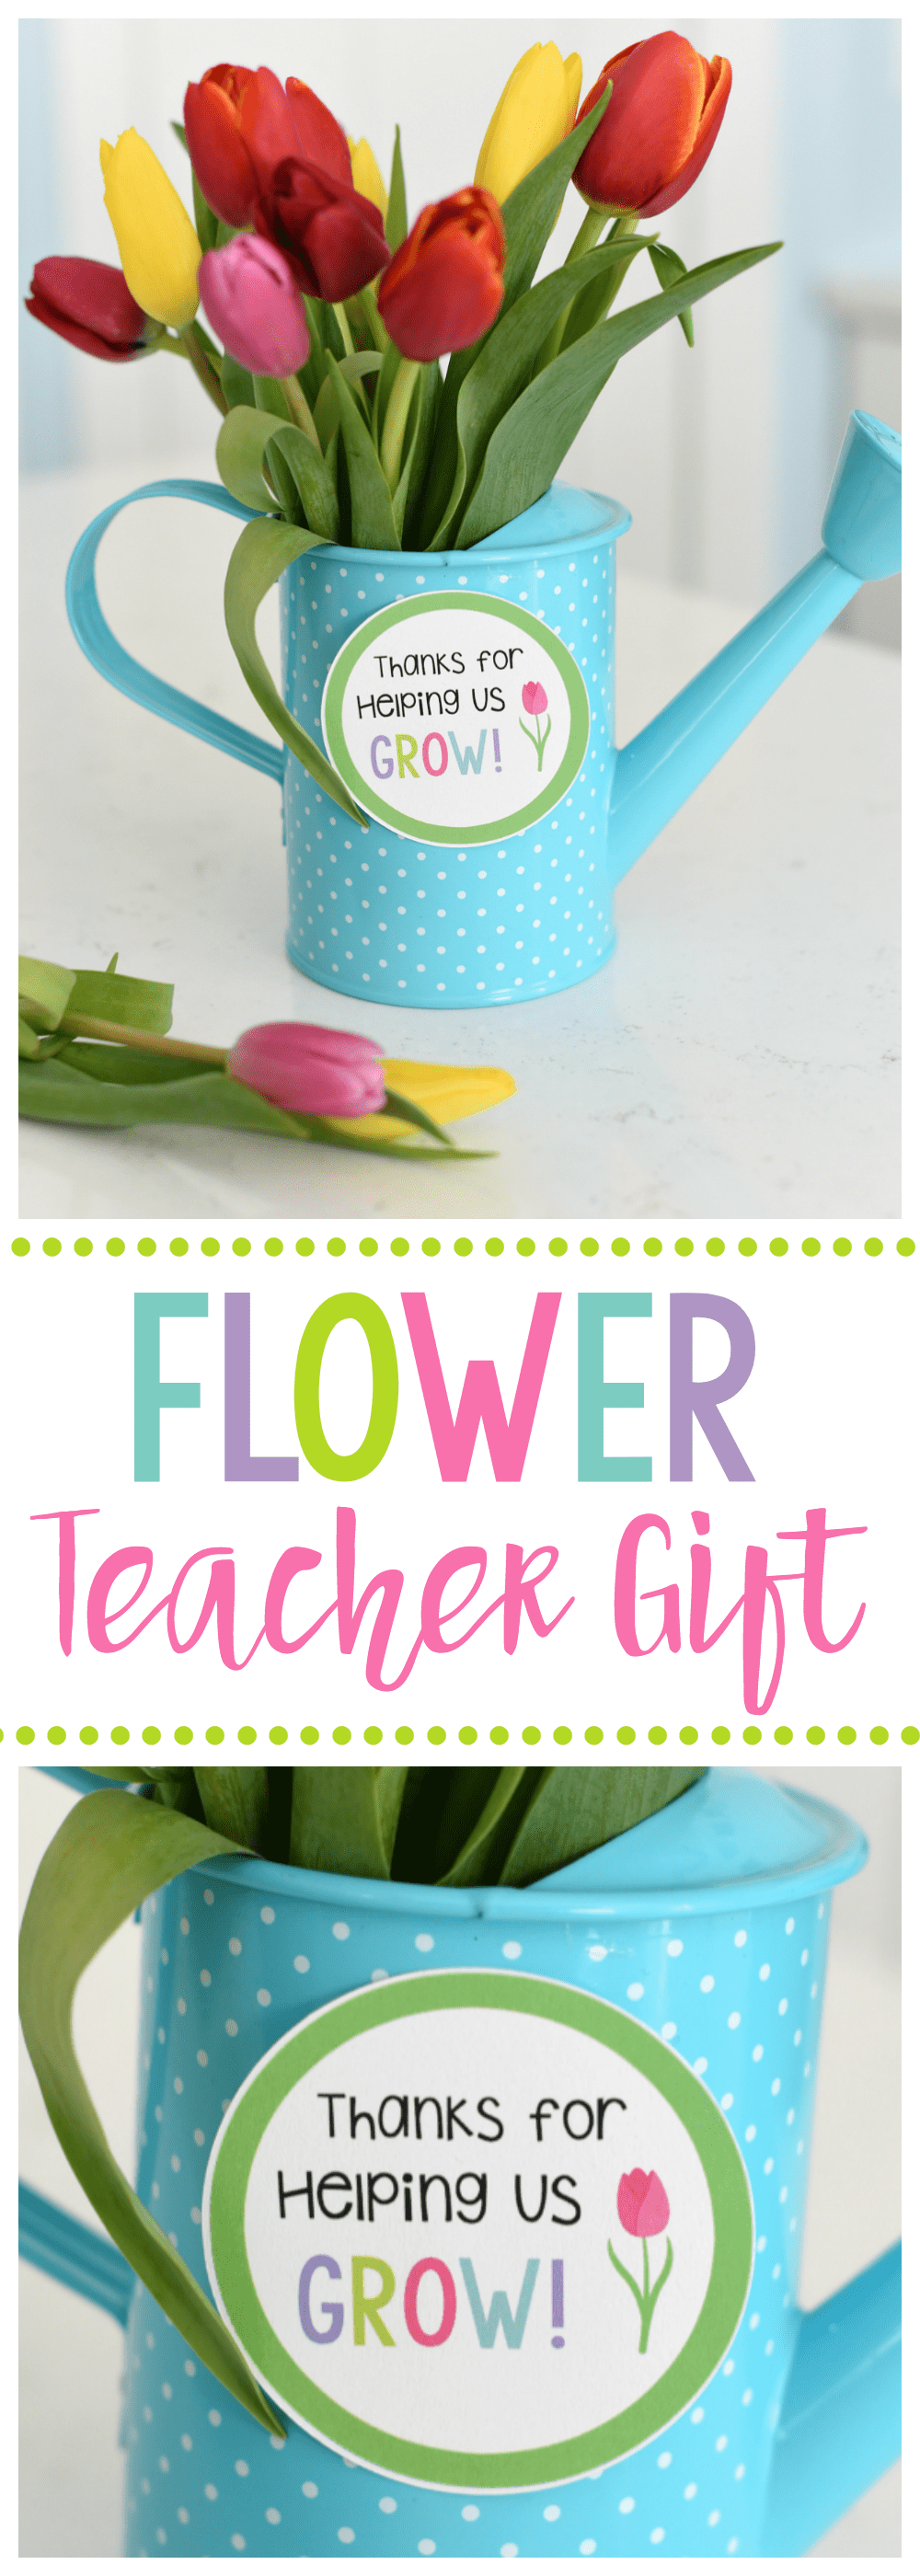 Cute Flower Teacher Gift Idea with Thanks for Helping Us Grow Tag